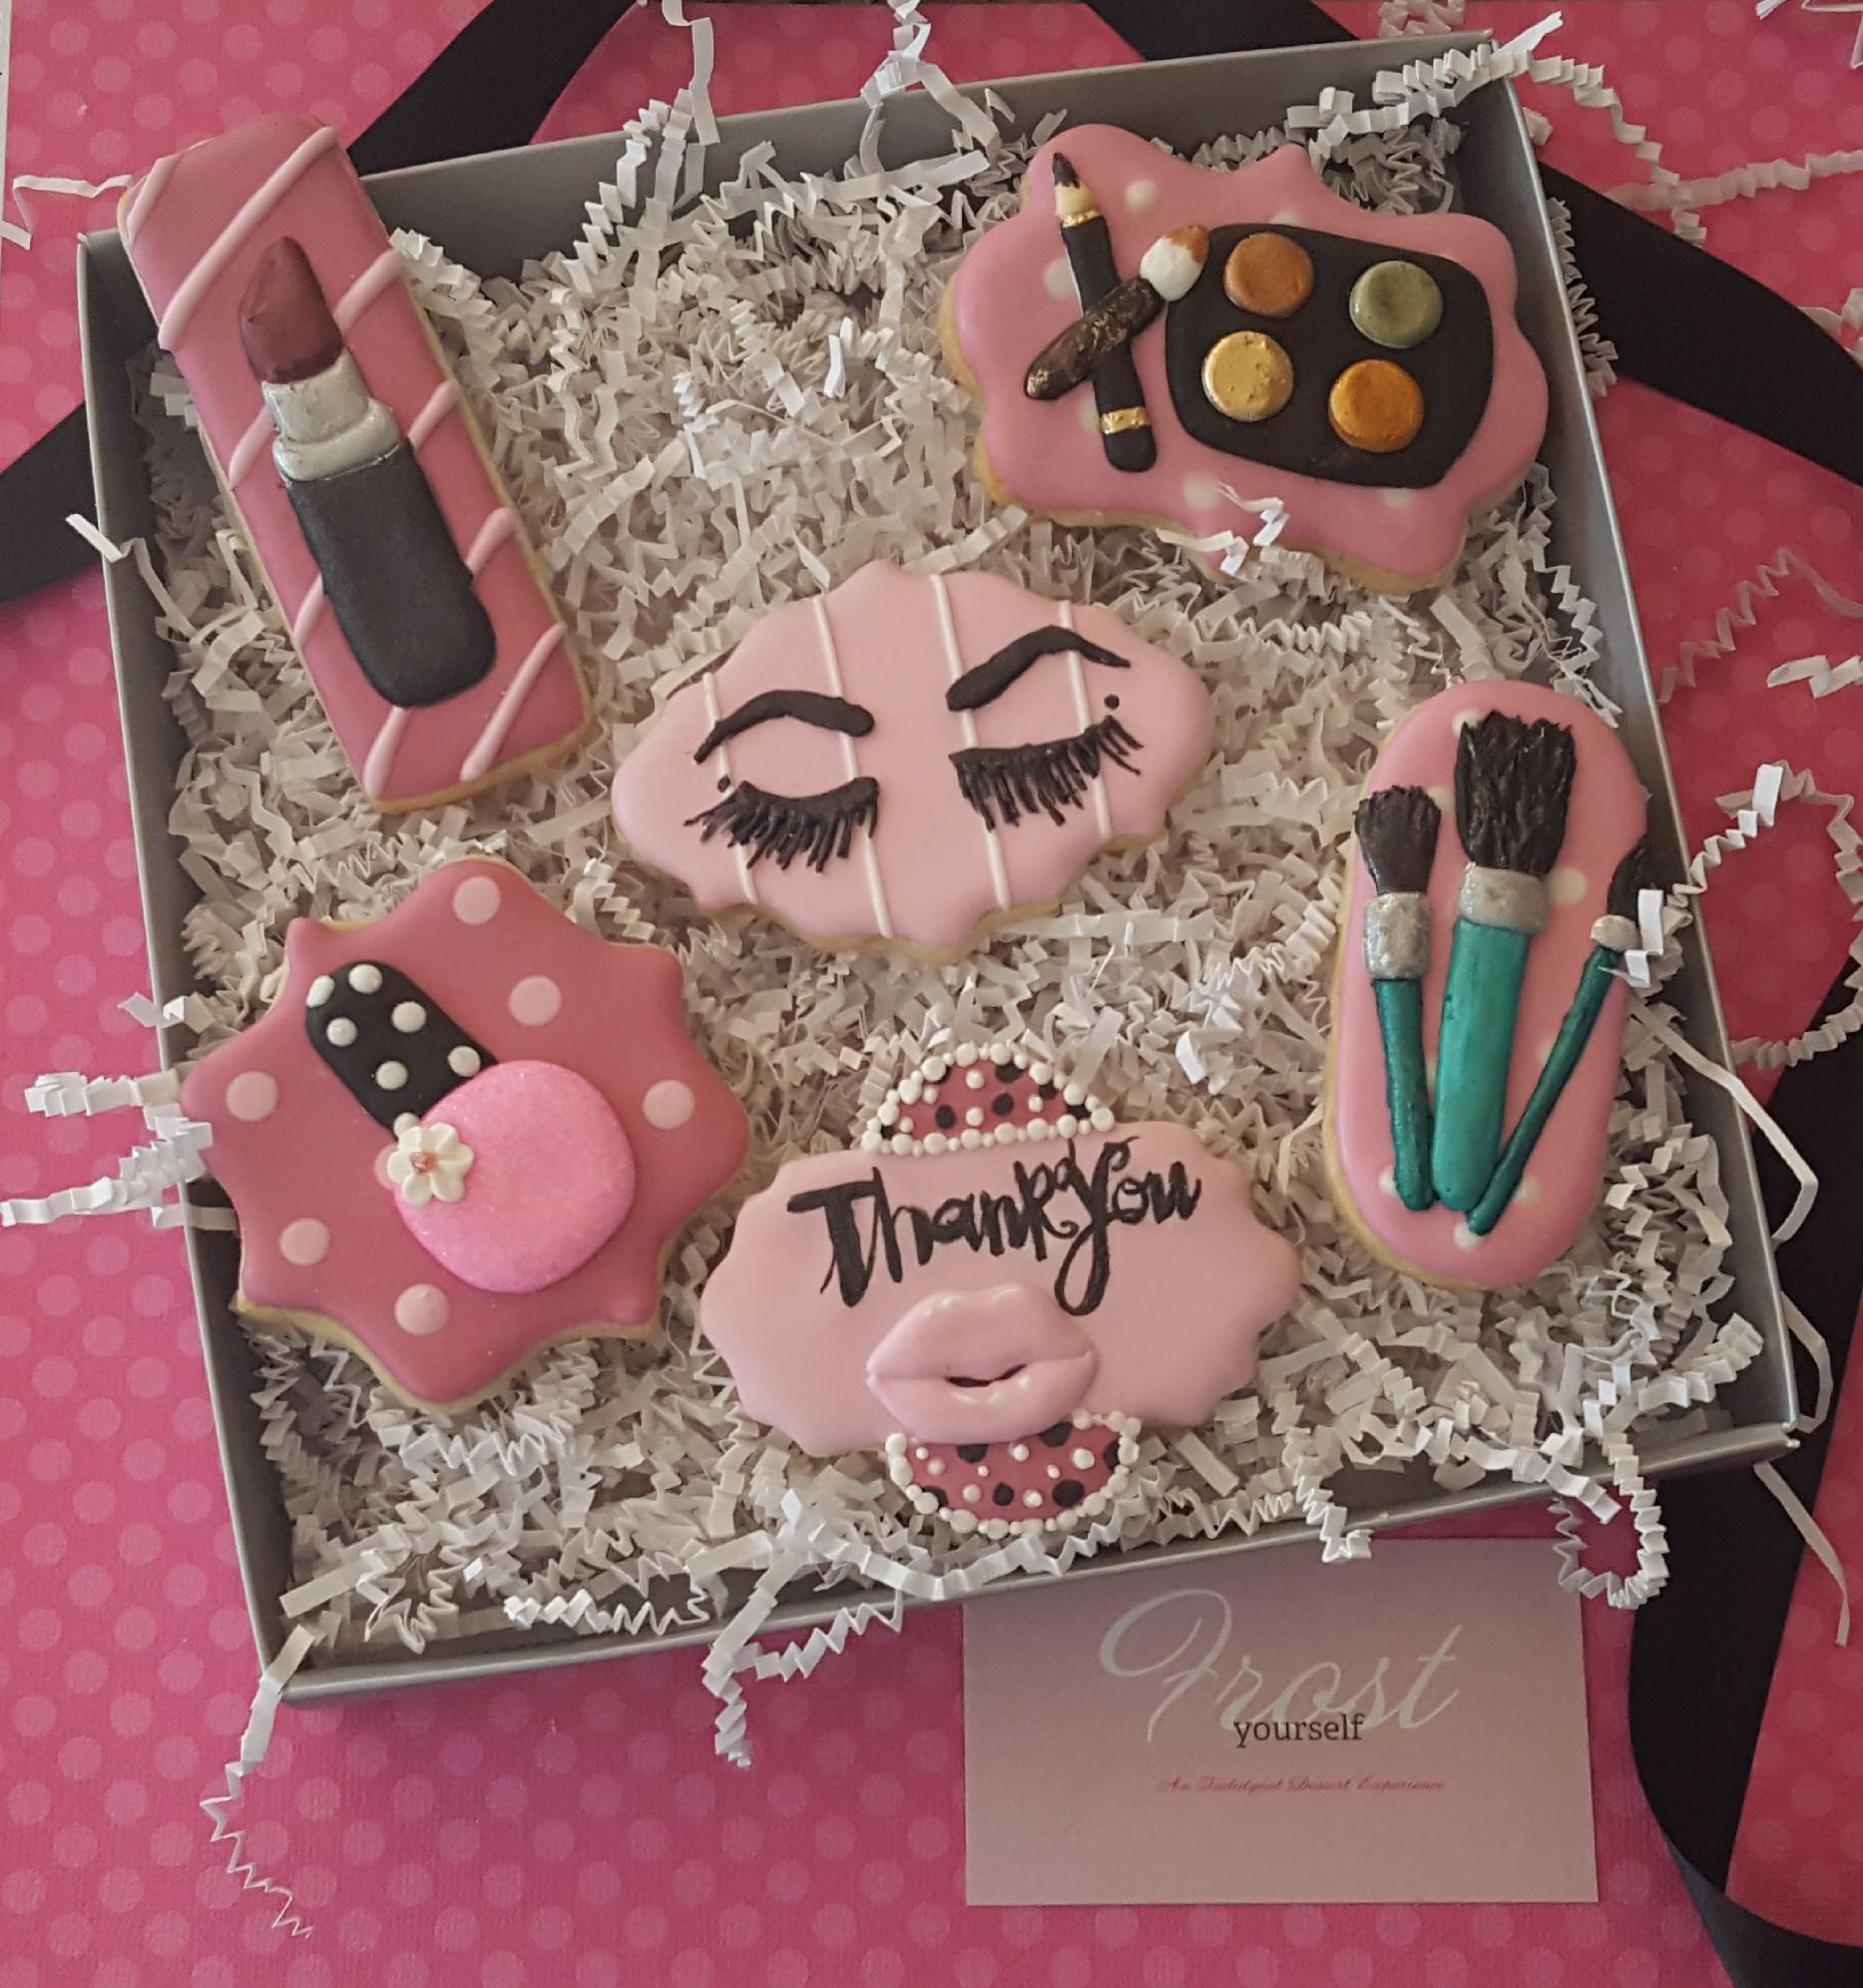 Want to send a unique Thank You gift to a makeup artist